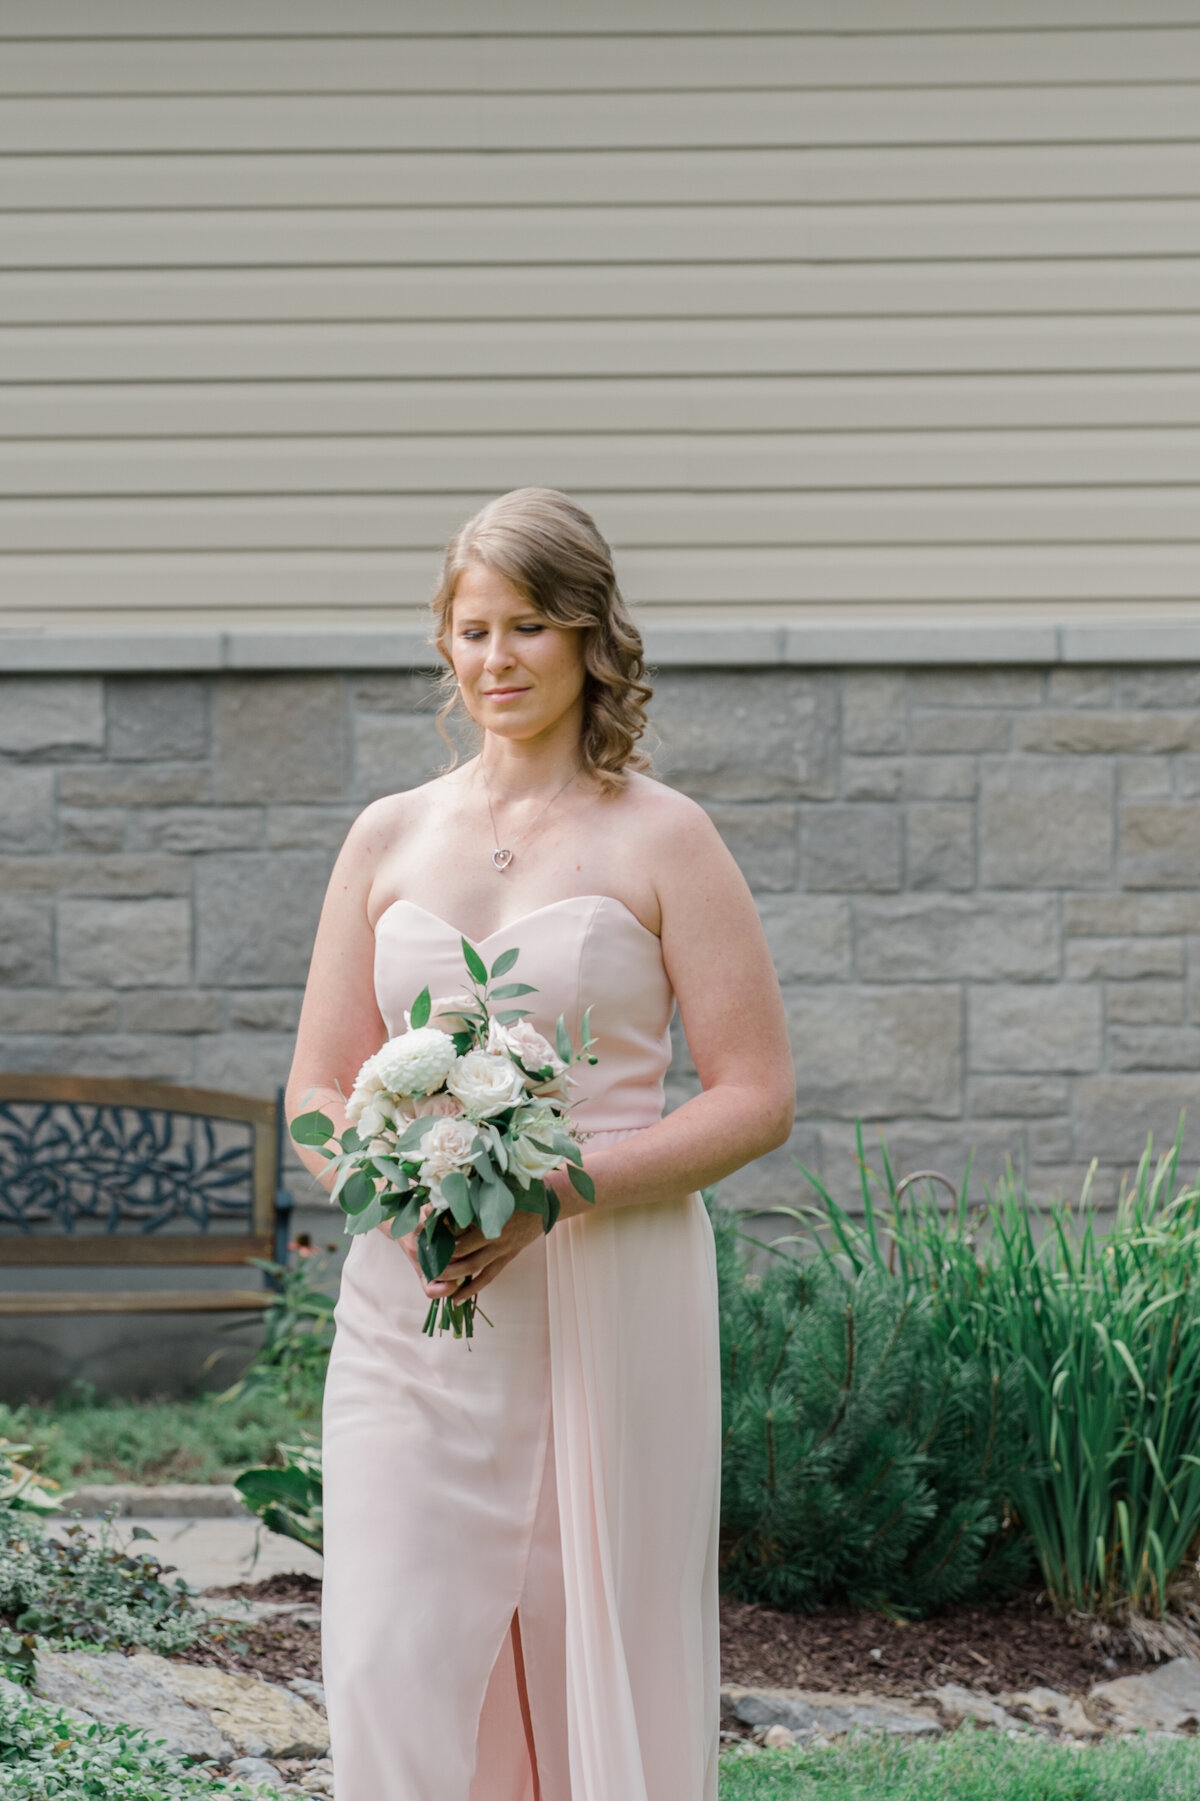 veronica-colin-wedding-woodlawn-grey-loft-studio-2020-124